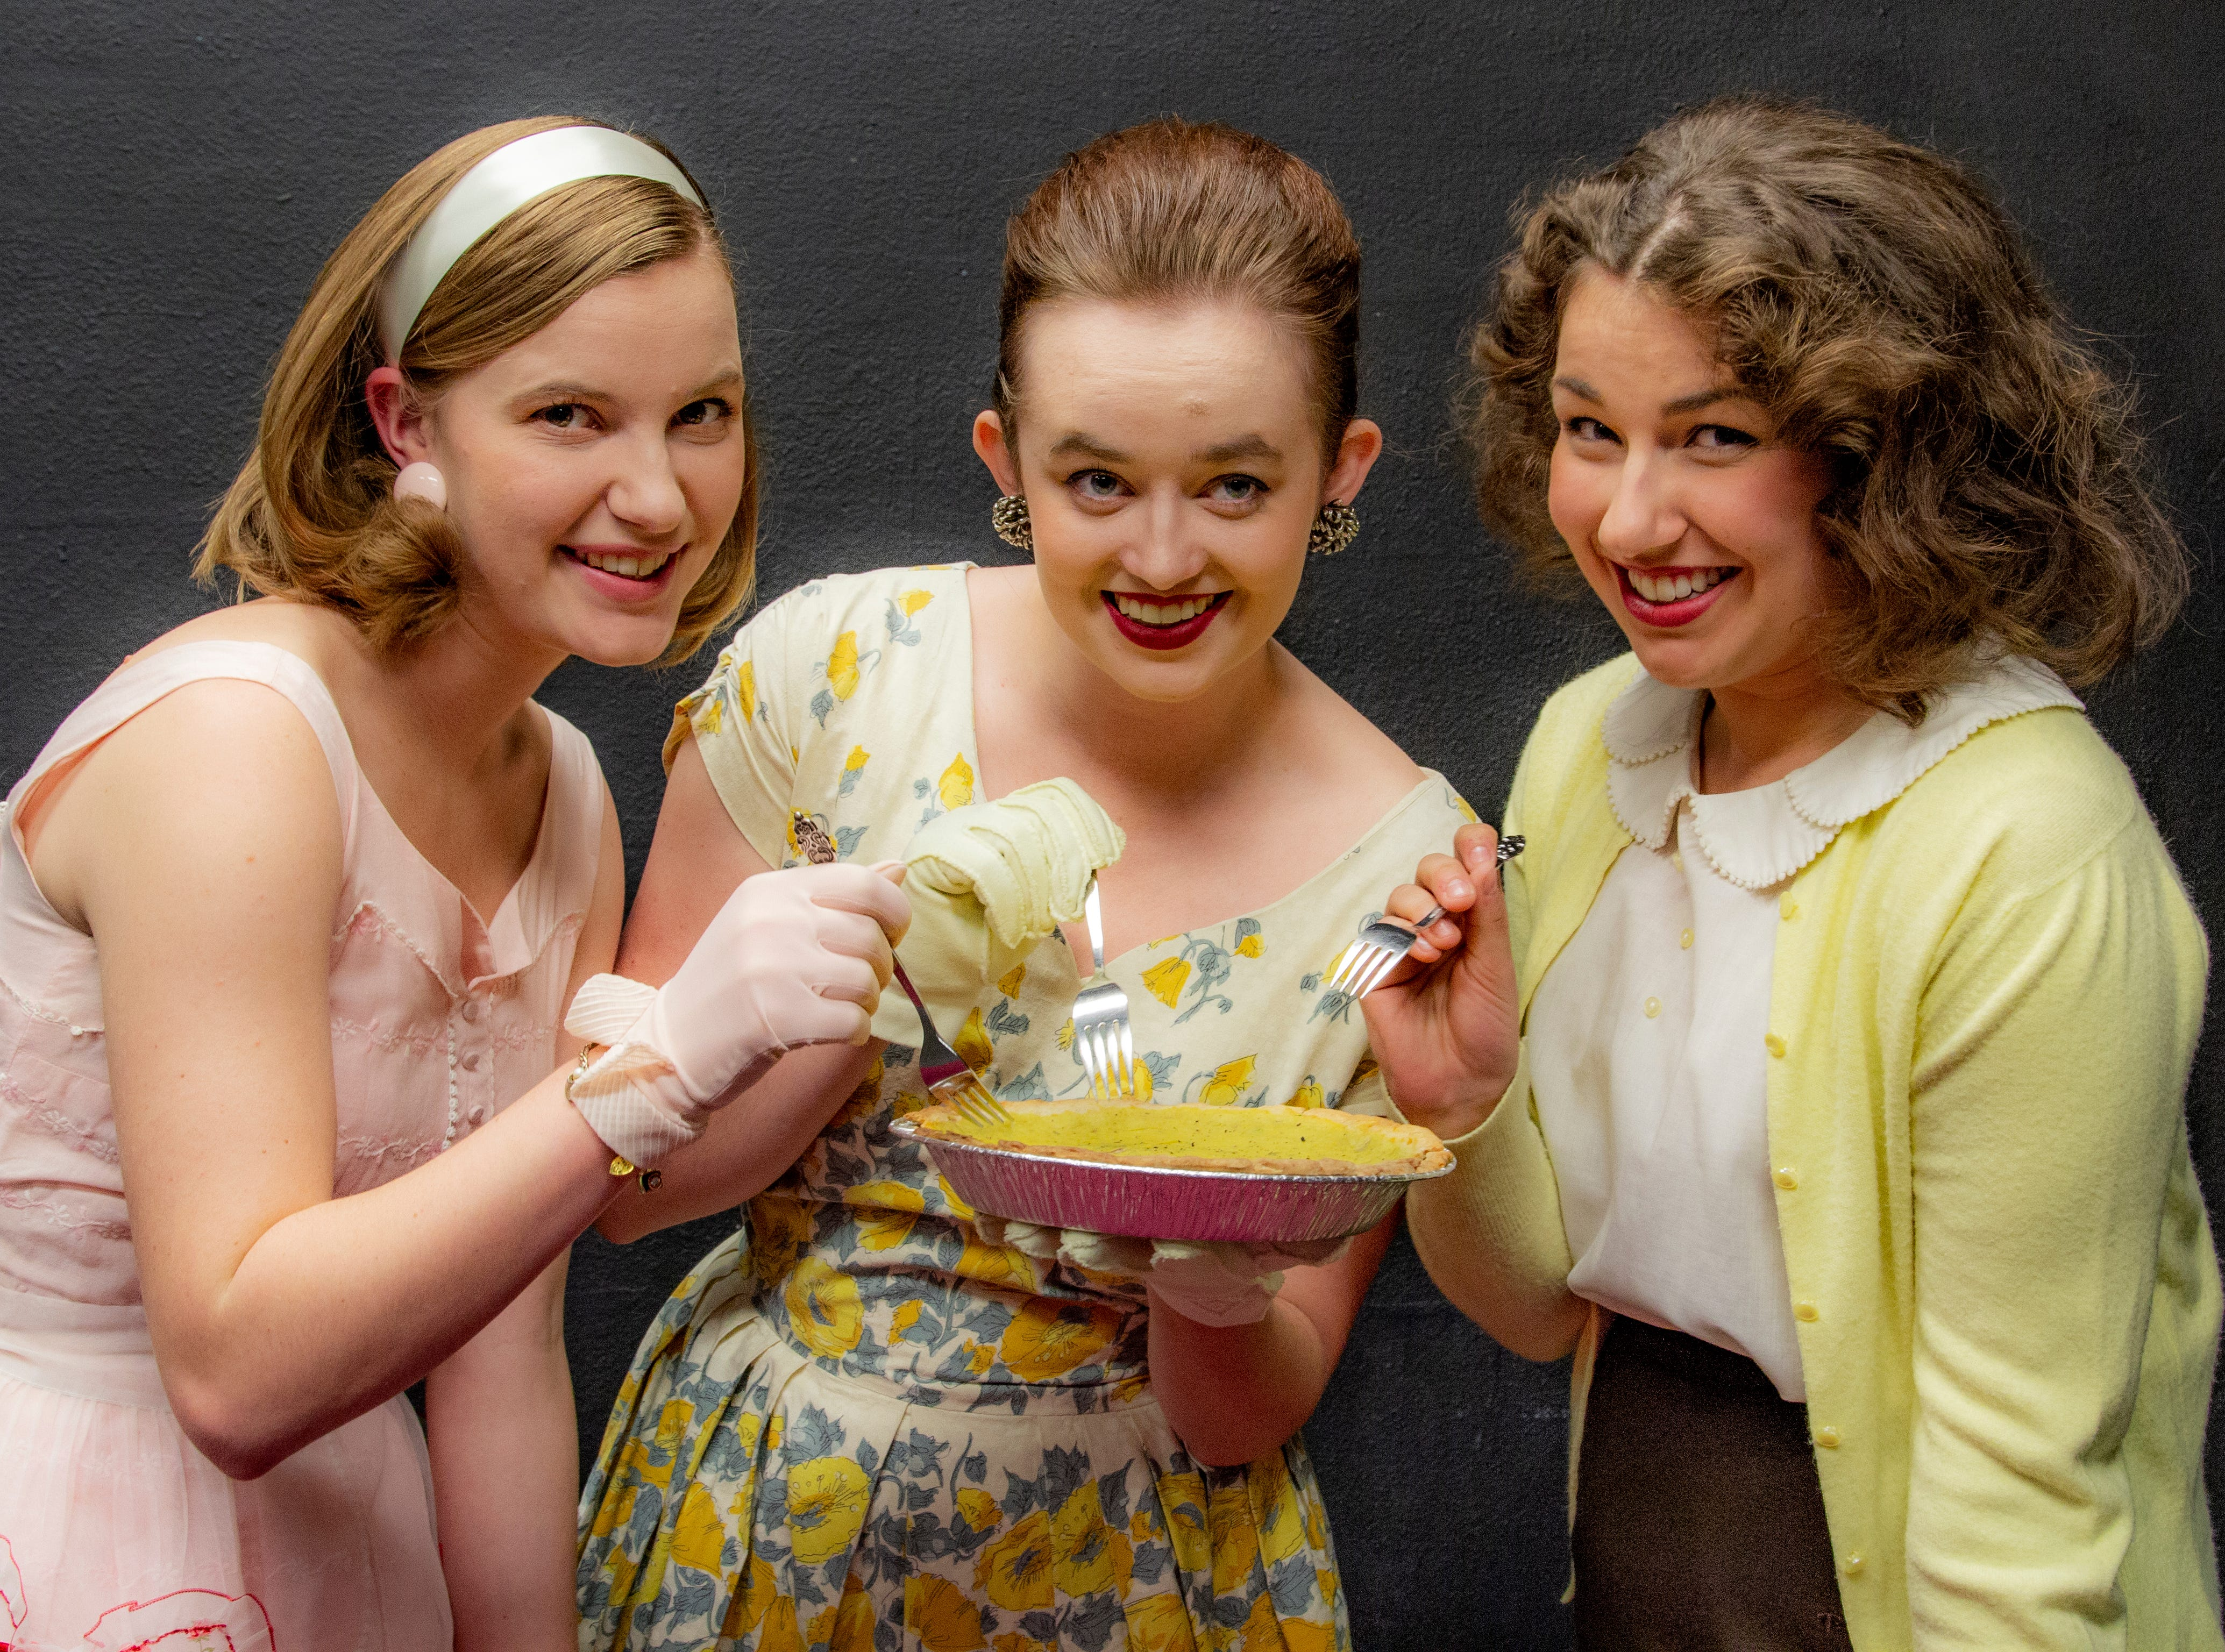 """""""5 Lesbians Eating a Quiche"""": A comedy set in the midst of the Cold War that follows five women attending an annual quiche breakfast who end up embracing their true selves, 7:30 p.m. Nov. 8-10, 14-17 and 2 p.m. Nov. 11, Western Oregon University, Rice Auditorium, 345 Monmouth Avenue N, Monmouth. $14 general admission, $10 for seniors, $8 for students and free for WOU students with ID."""